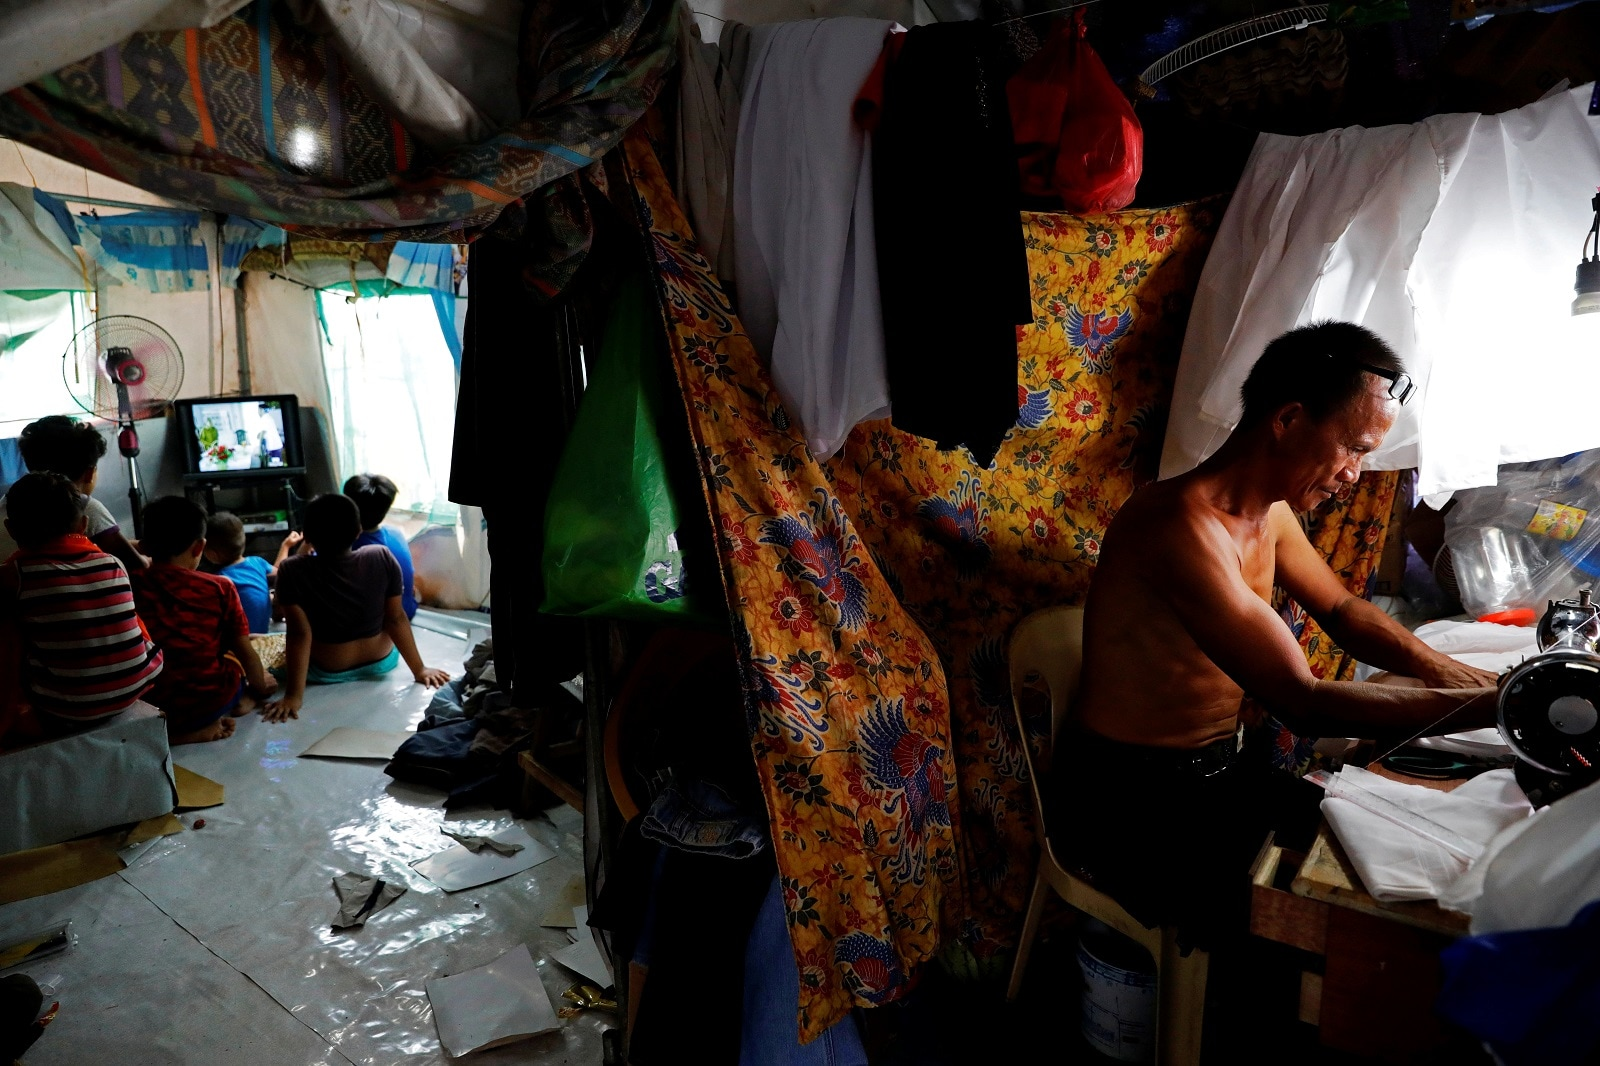 Abdul Gani, 49, works with a sewing machine as his children and nephews watch TV in a tent at an evacuation camp for families displaced by the Marawi siege, in Marawi City, Lanao del Sur province, Philippines, May 12, 2019. REUTERS/Eloisa Lopez